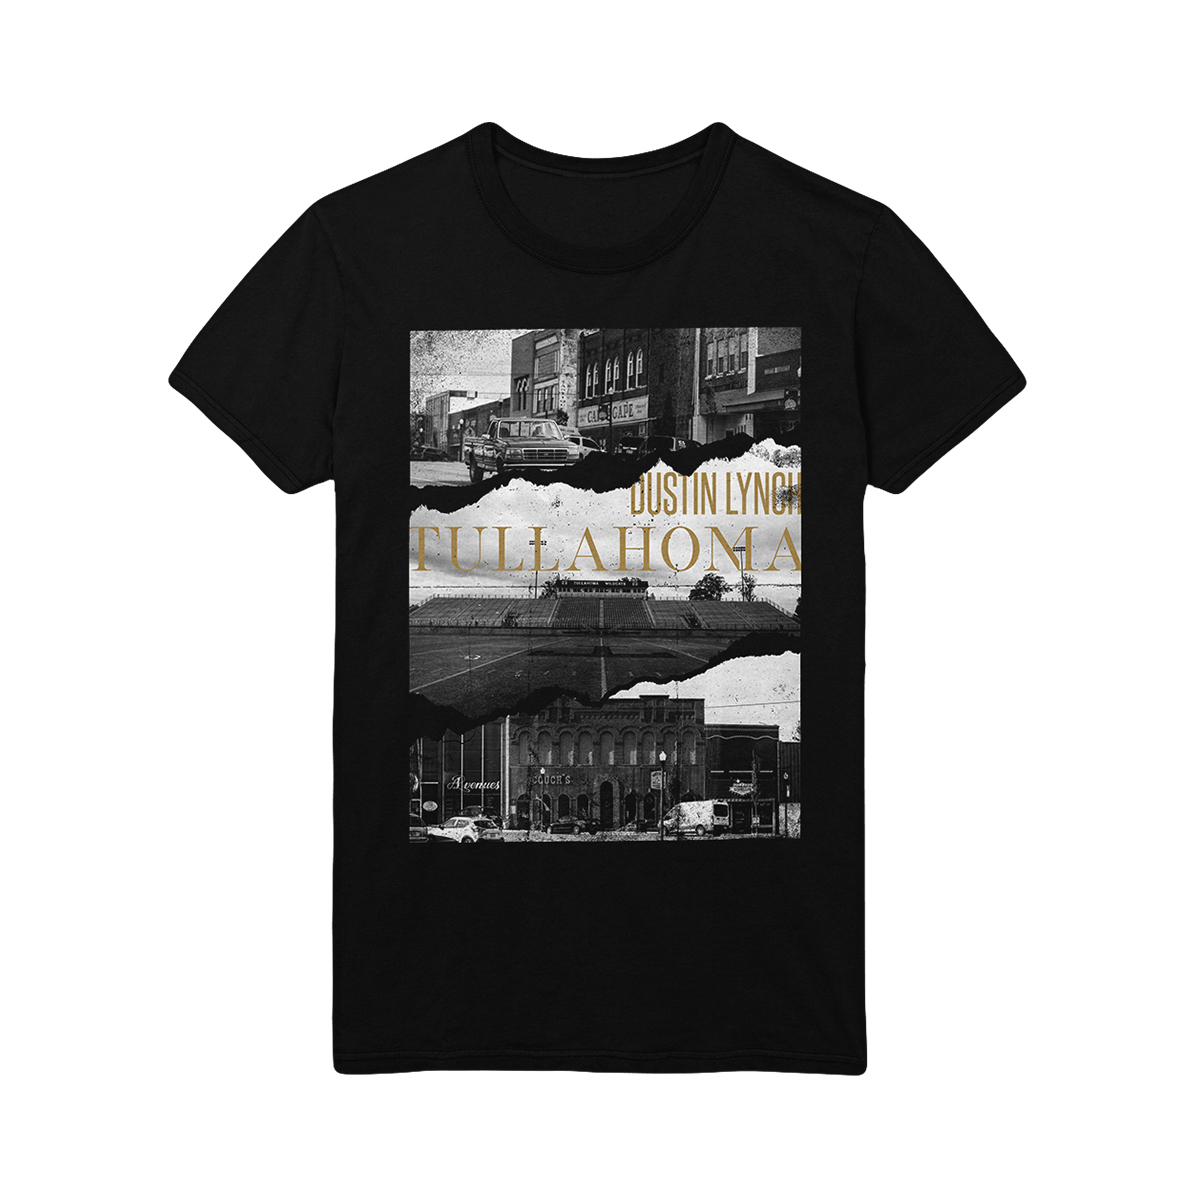 Tullahoma Photo T-shirt